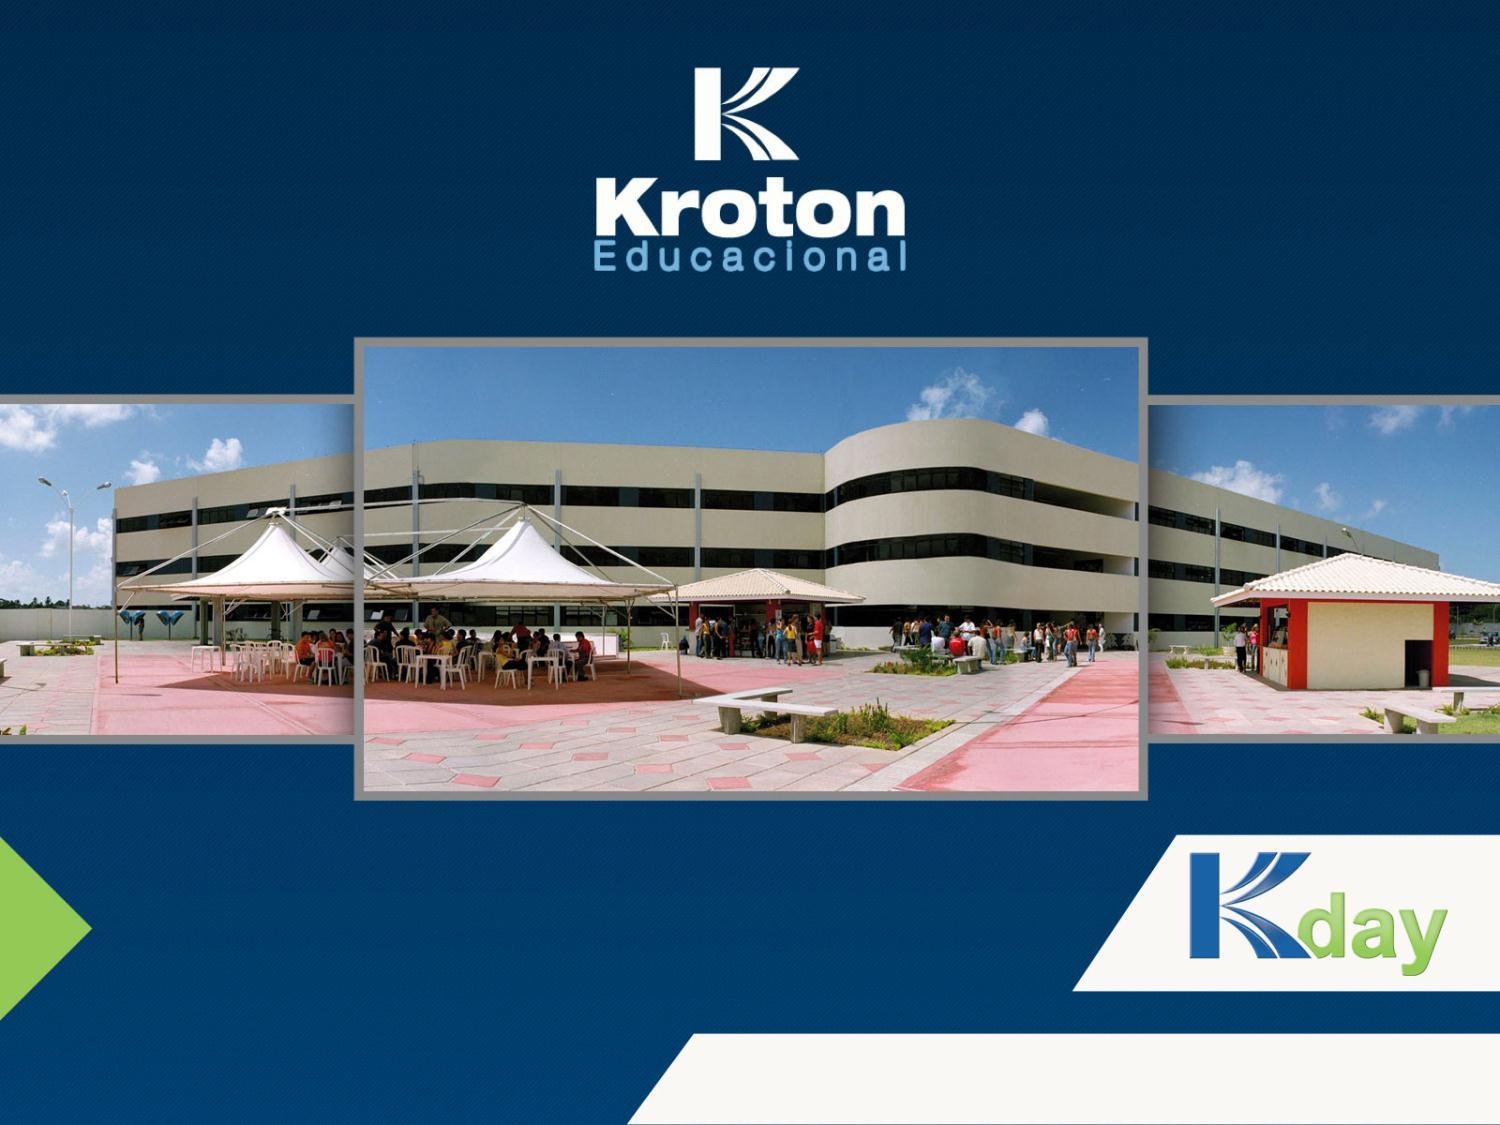 Kroton Day: Primary and